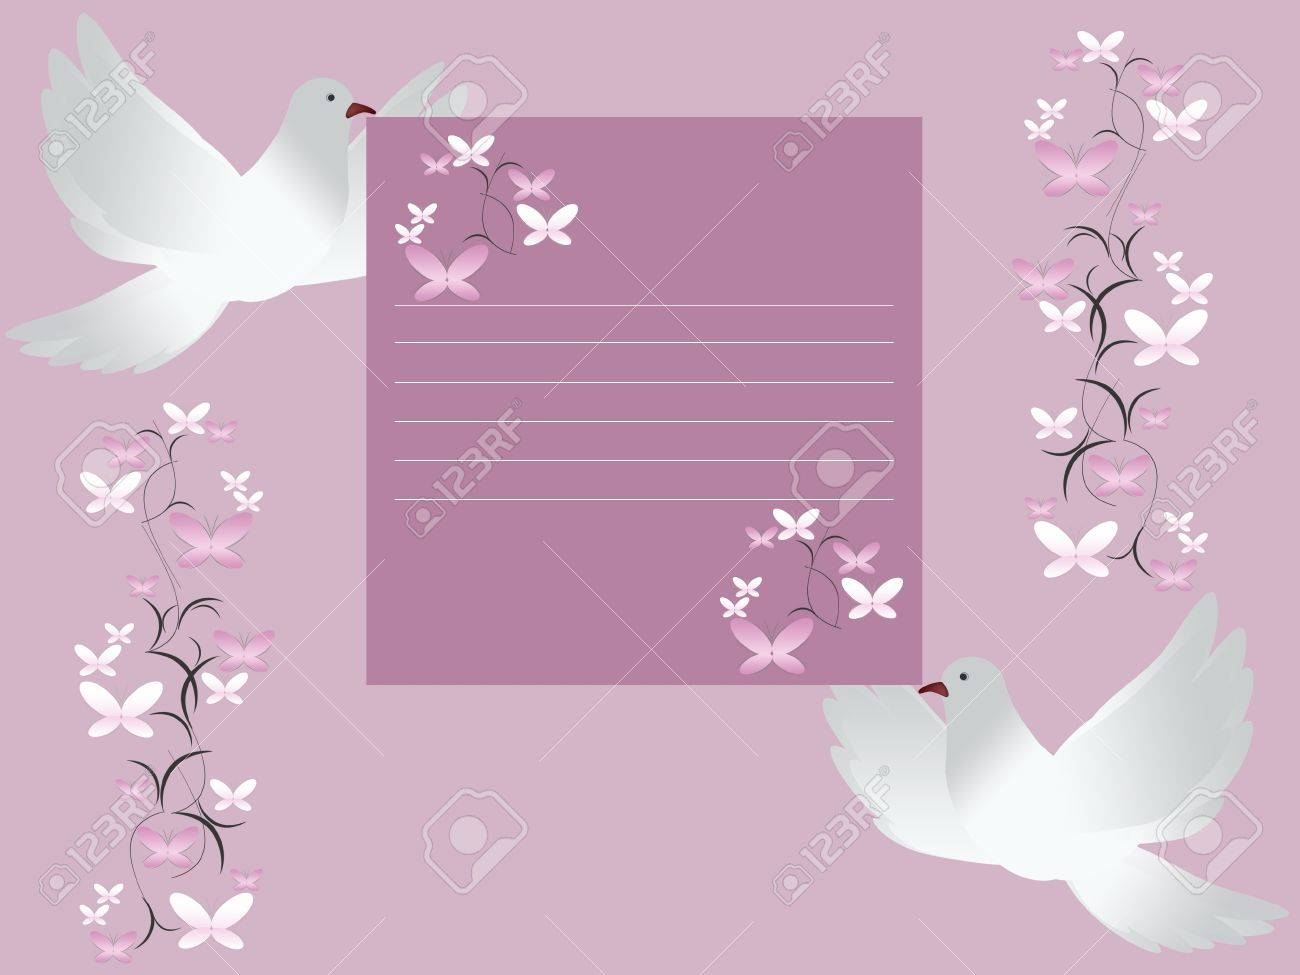 Wedding Card Invitation With White Doves Stock Photo, Picture And ...